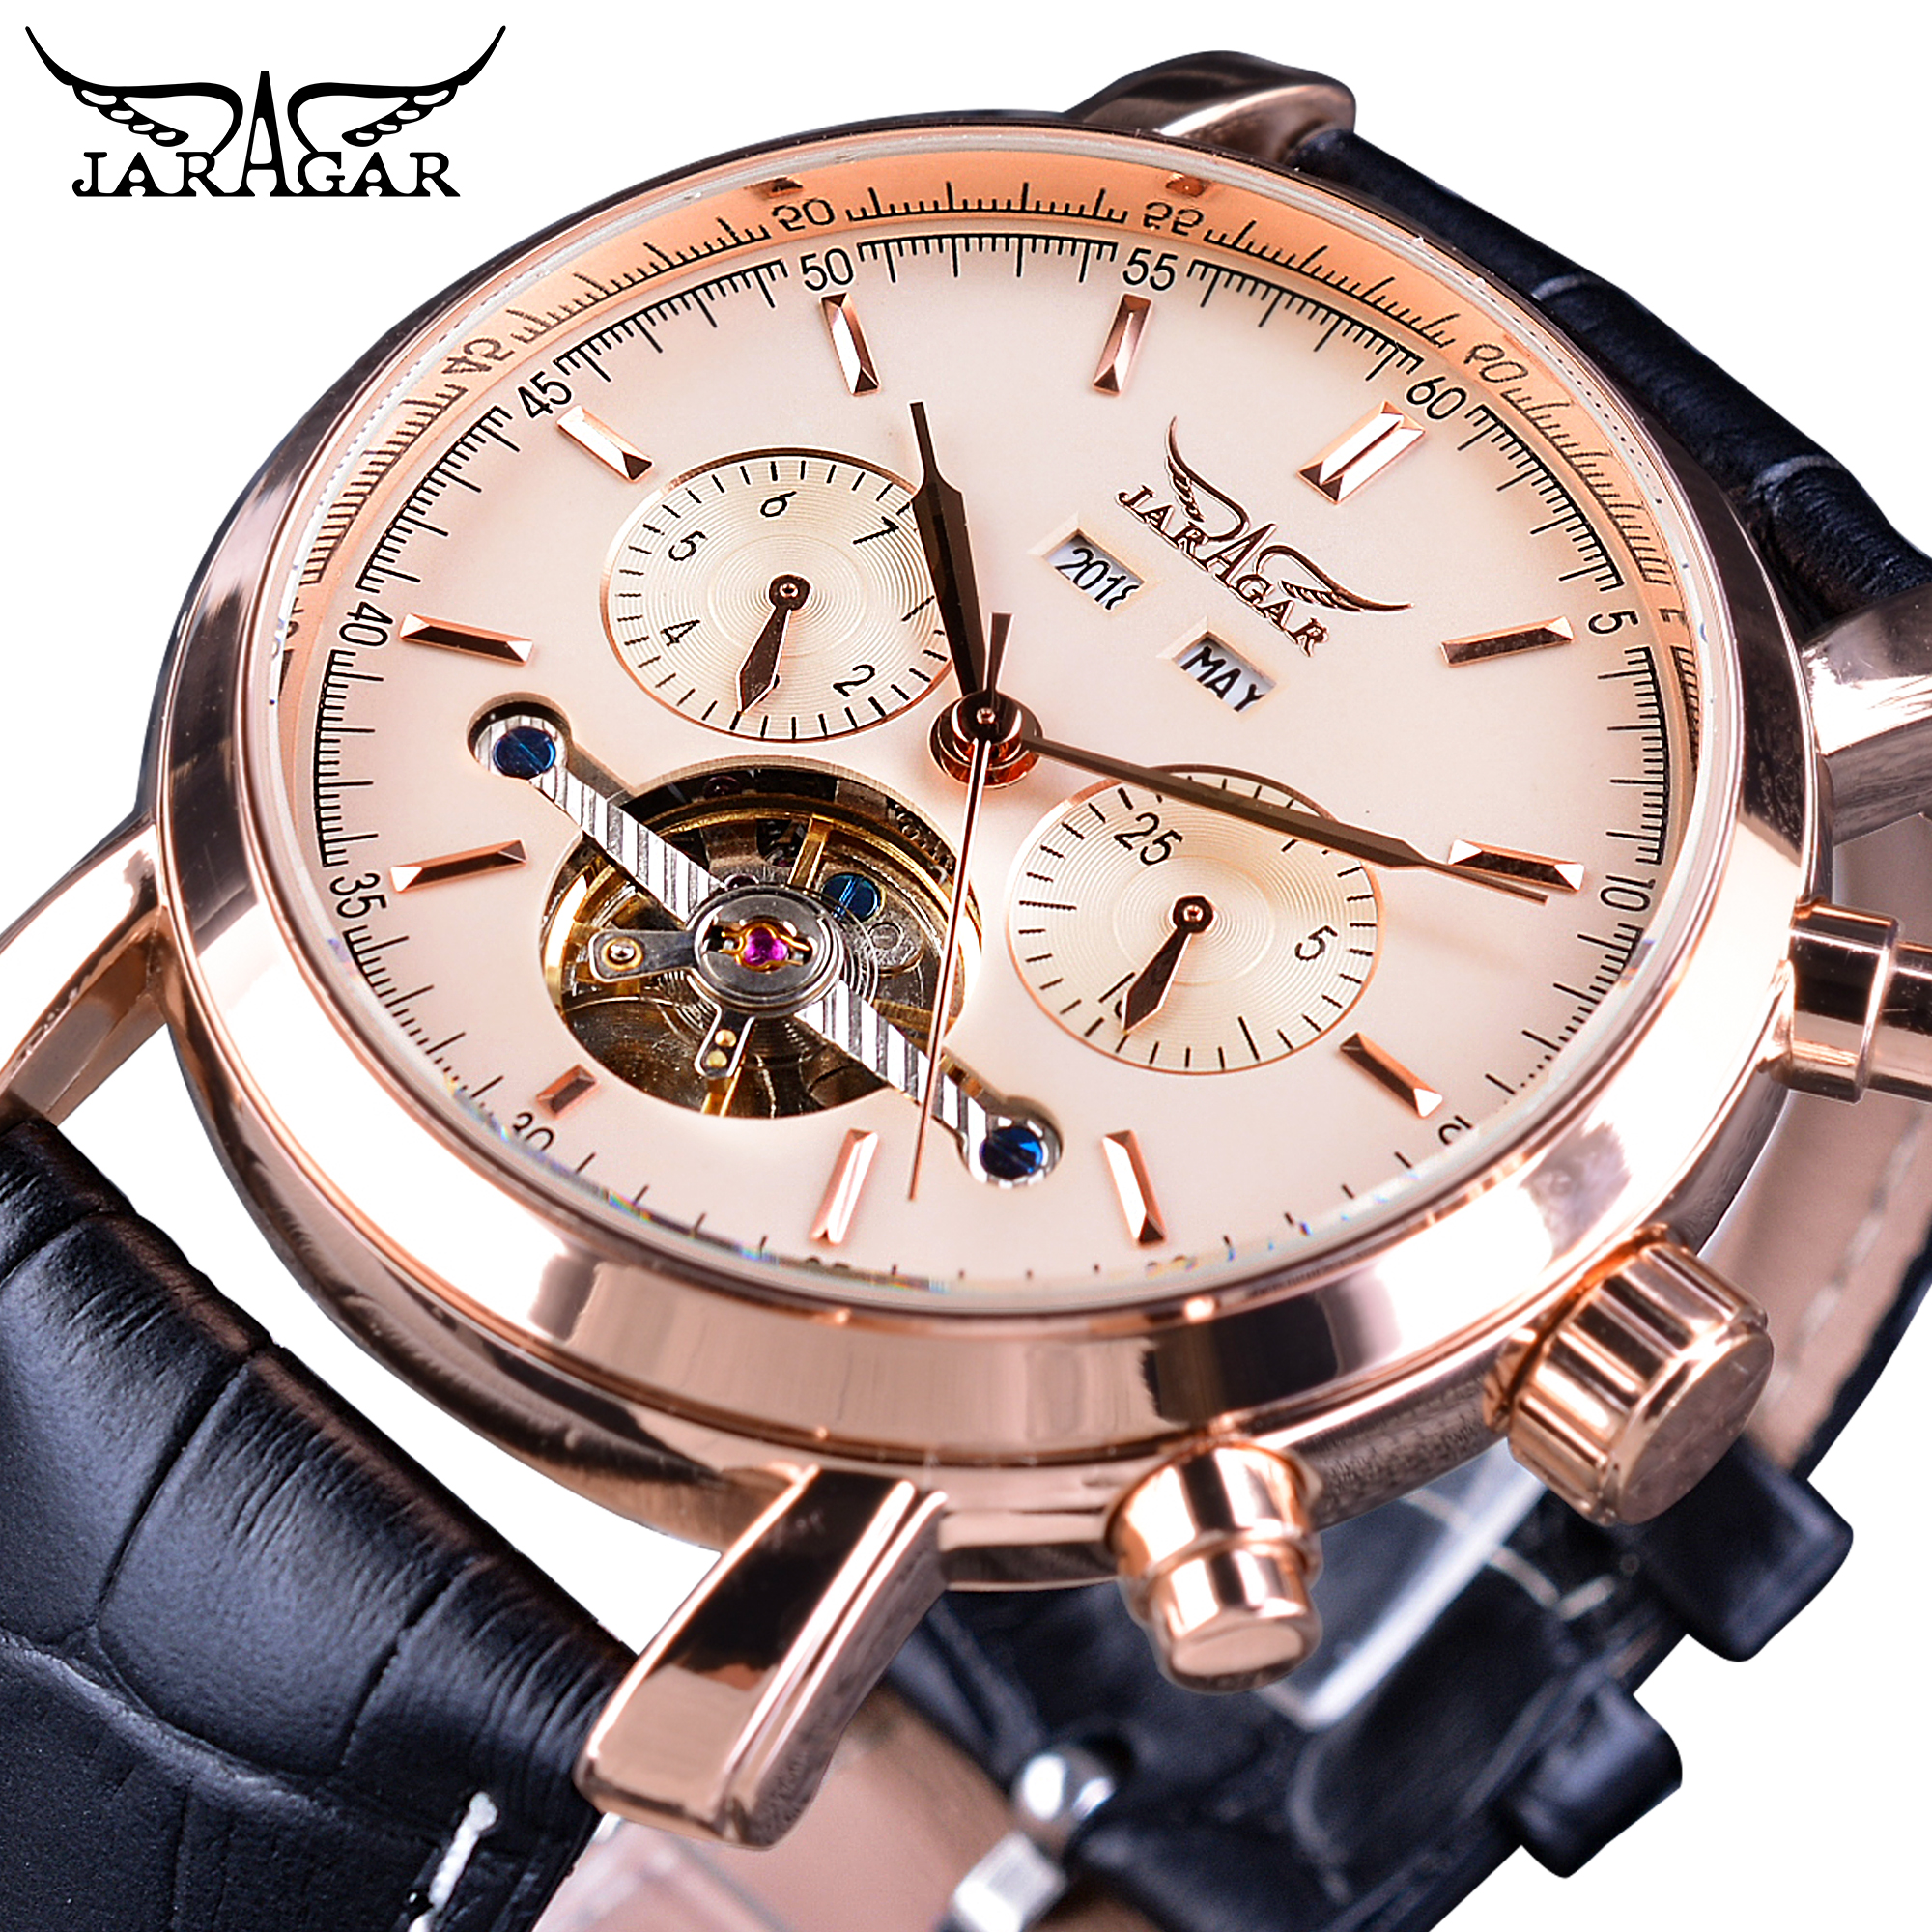 Jaragar Rose Golden Tourbillon Business Men Watches Automatic Self-Wind Date Year Genuine Leather Strap Mechanical Reloj Hombre